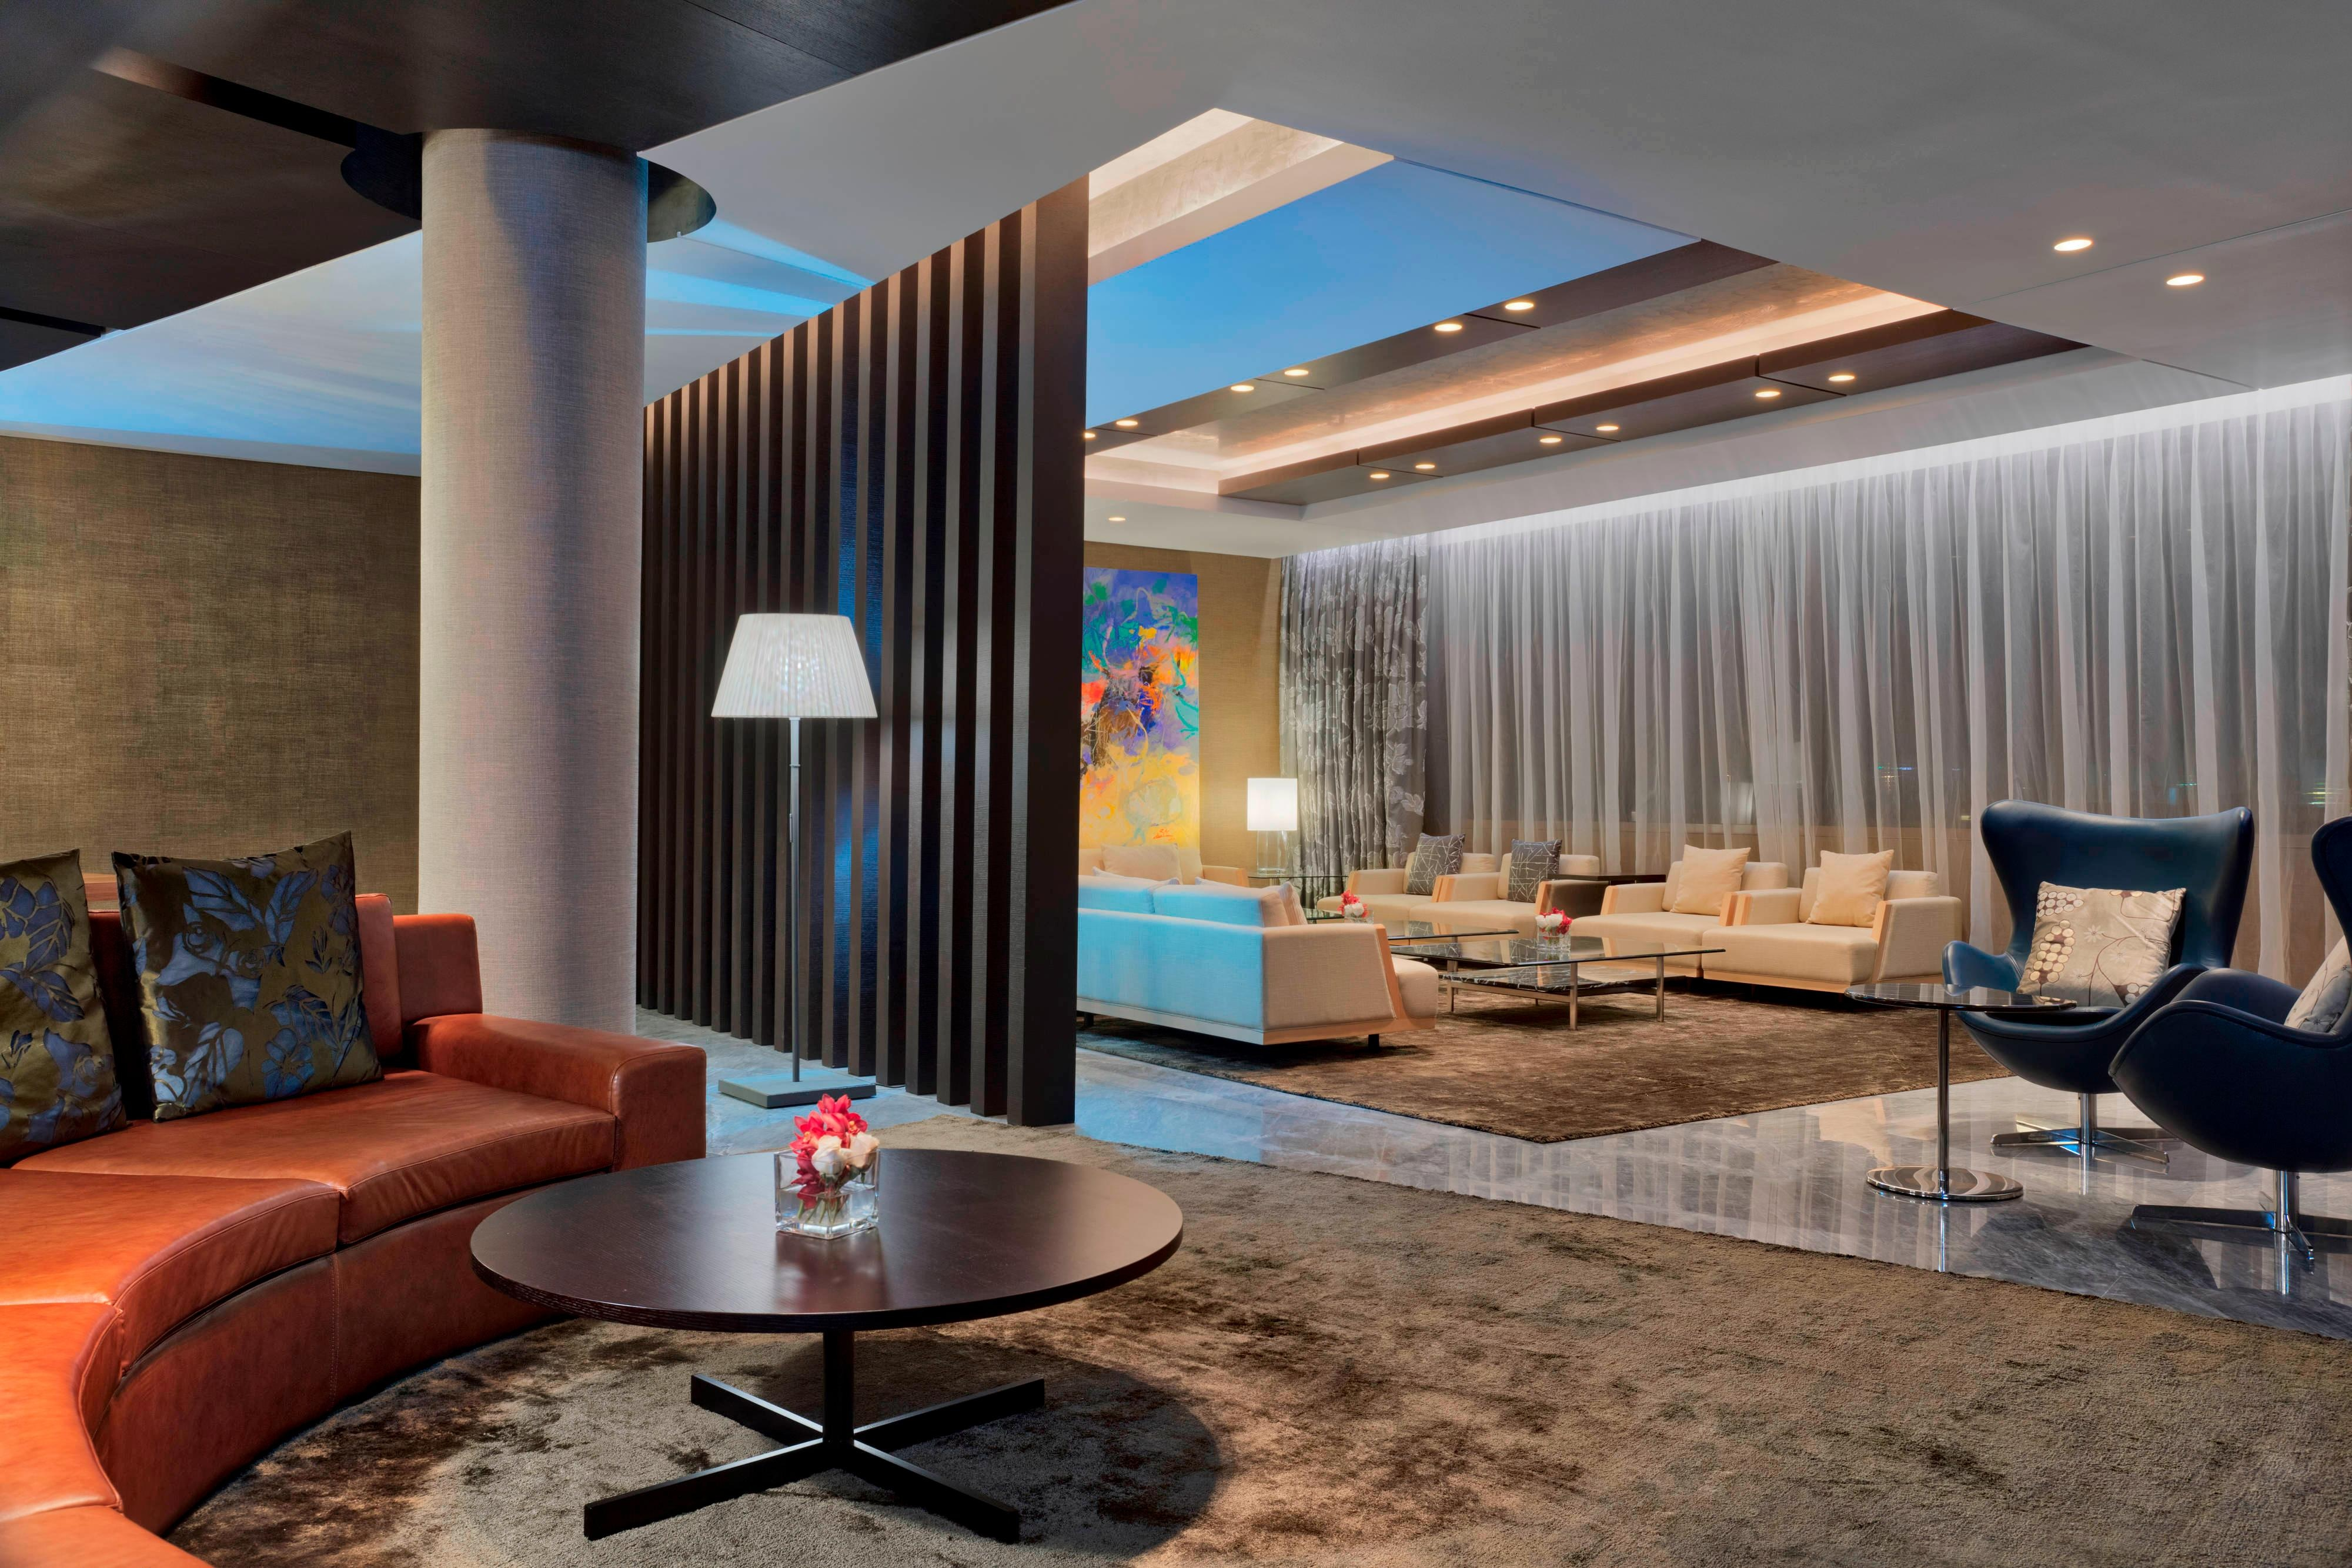 The gracious living room with plush sofa and multiple armchairs invites you to relax and socialize in style. A 55-inch HDTV and Bose entertainment system keeps guests entertained during their stay.